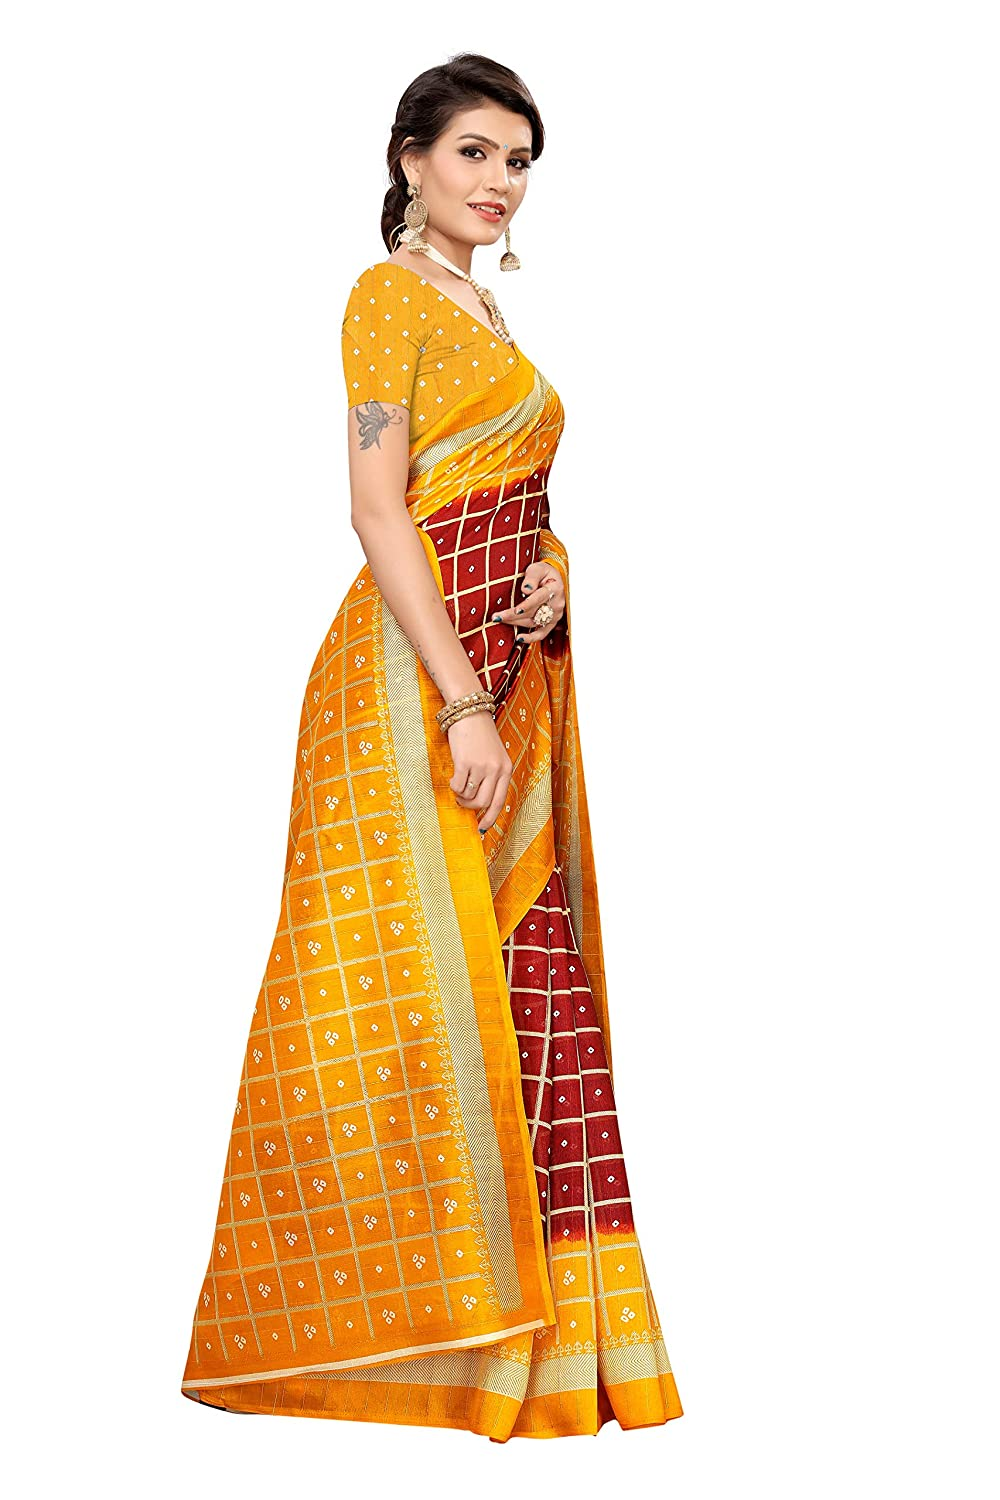 CRAFTSTRIBE Art Silk Checks Black And Orange Indian Wedding Bollywood Saree for Women